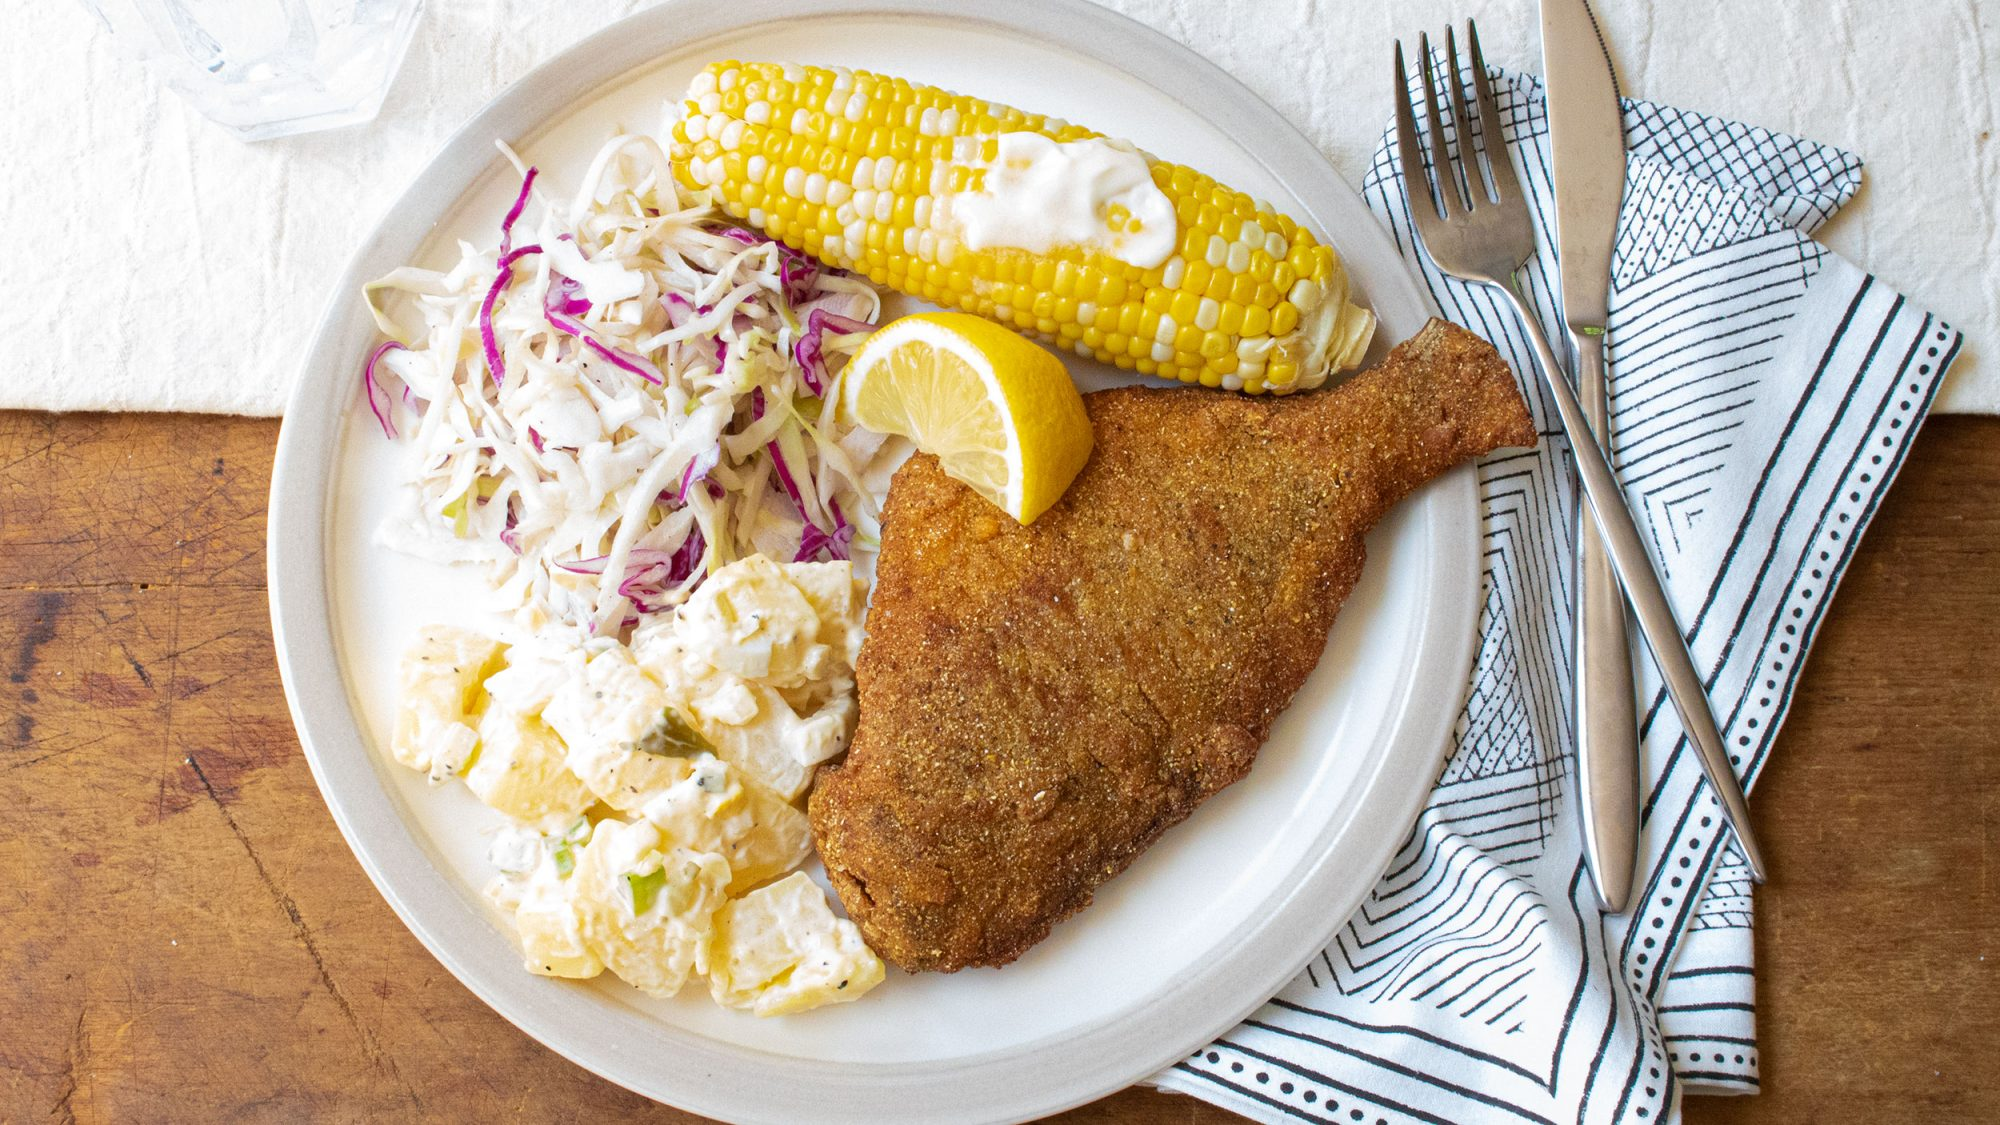 white plate with fried fish, coleslaw, potato salad and corn on the cob